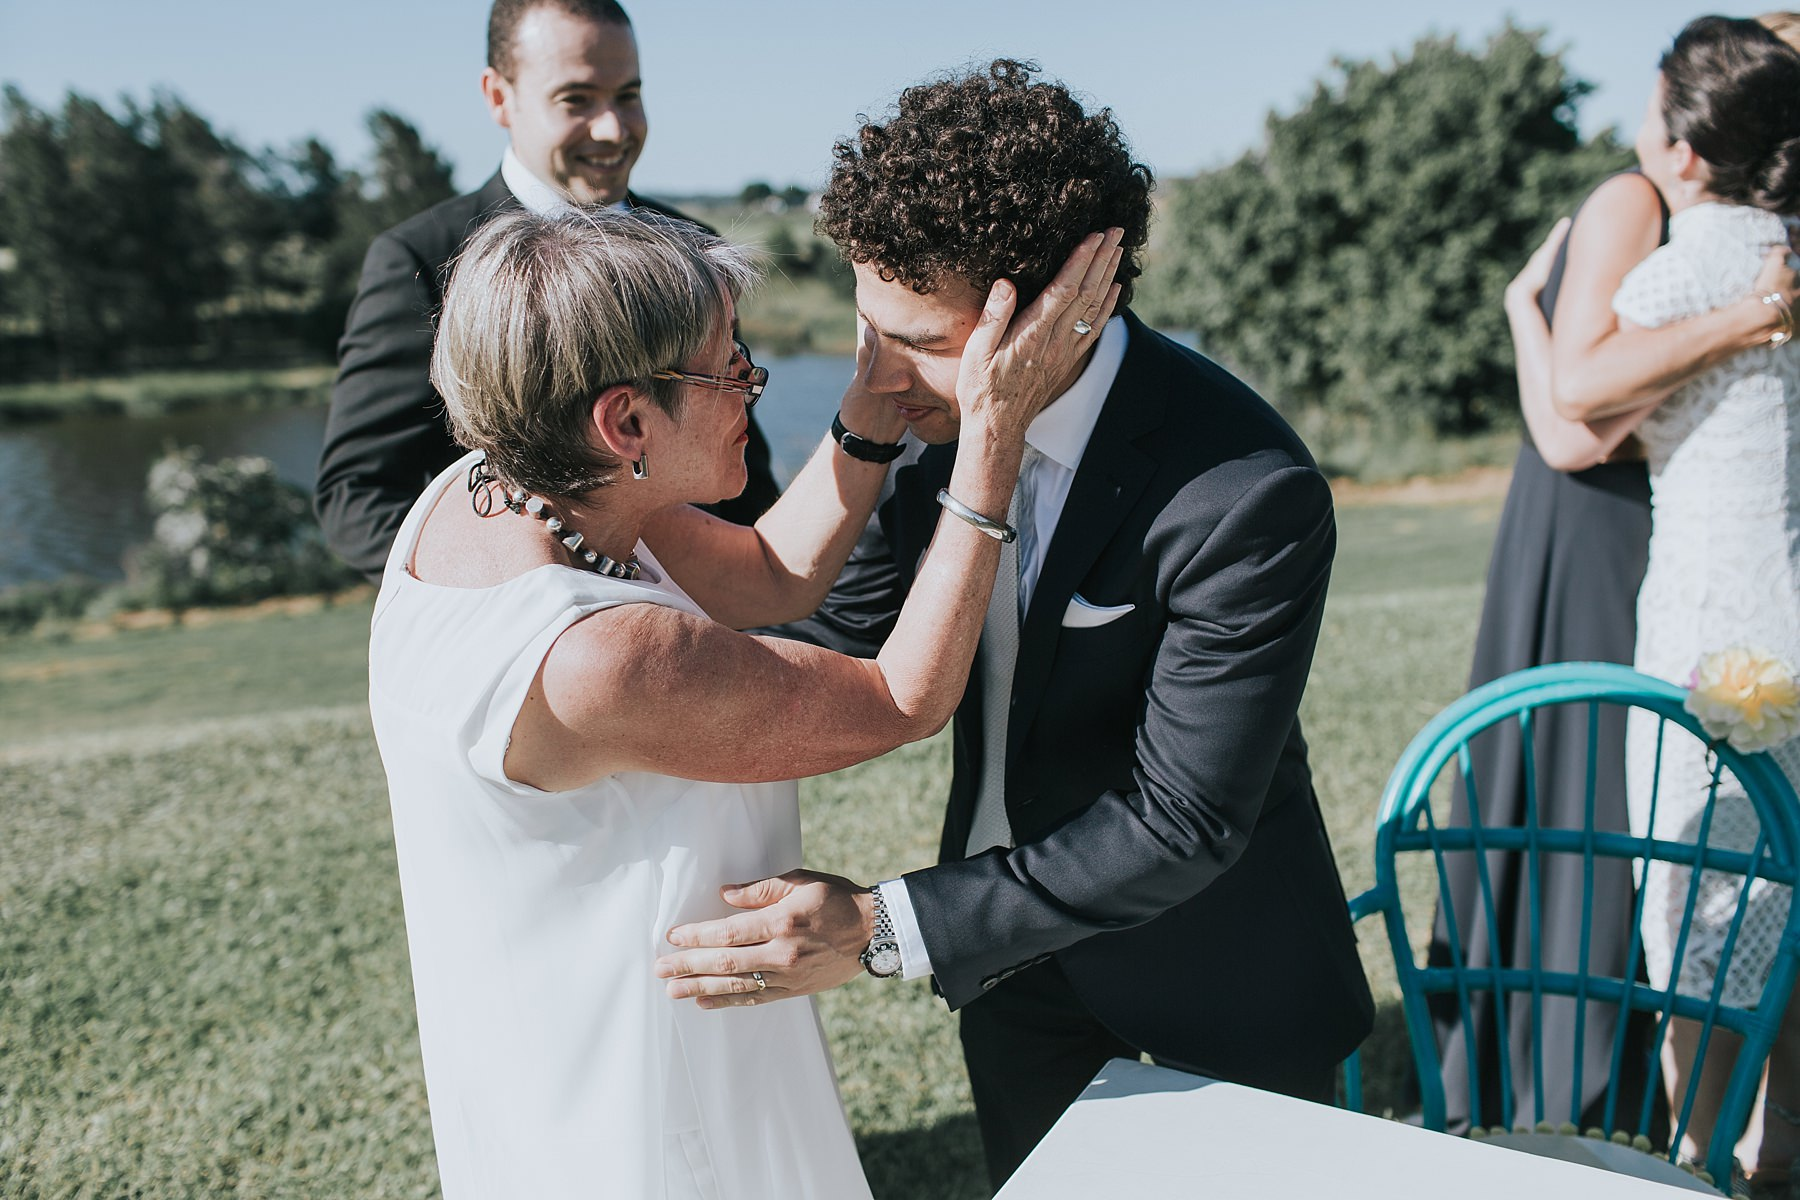 groom congratulated by friends and family on wedding day